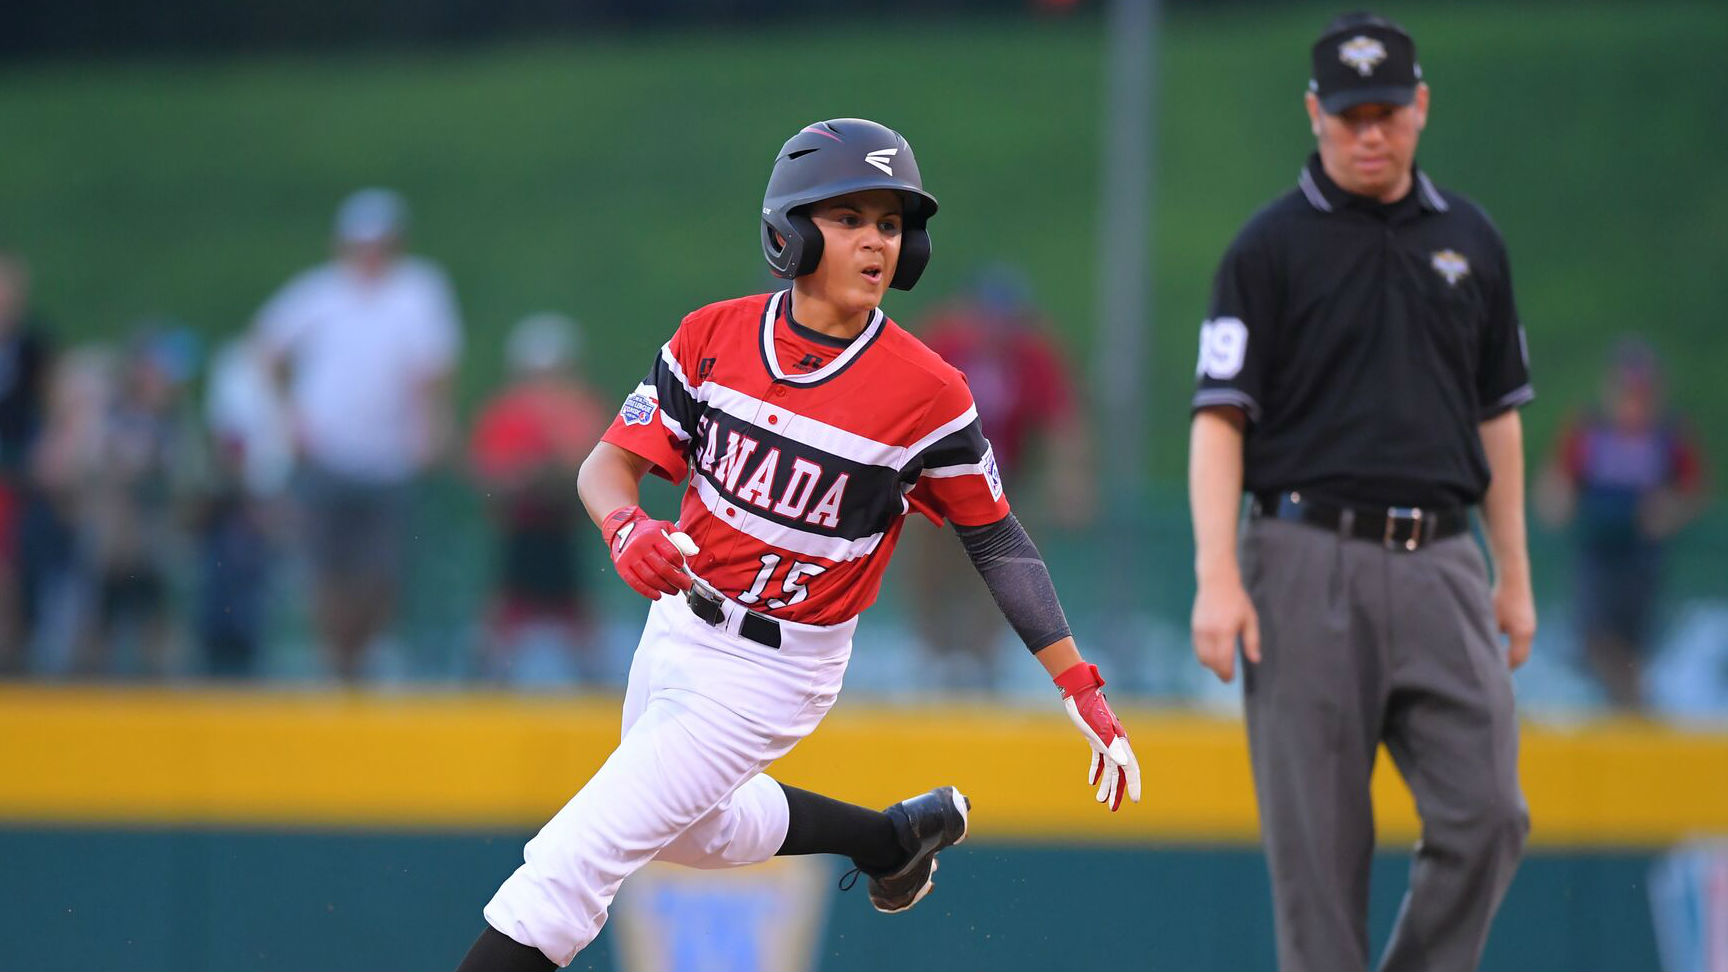 Little League World Series 2018: Canada pushed to brink of elimination after 8-3 loss to Panama